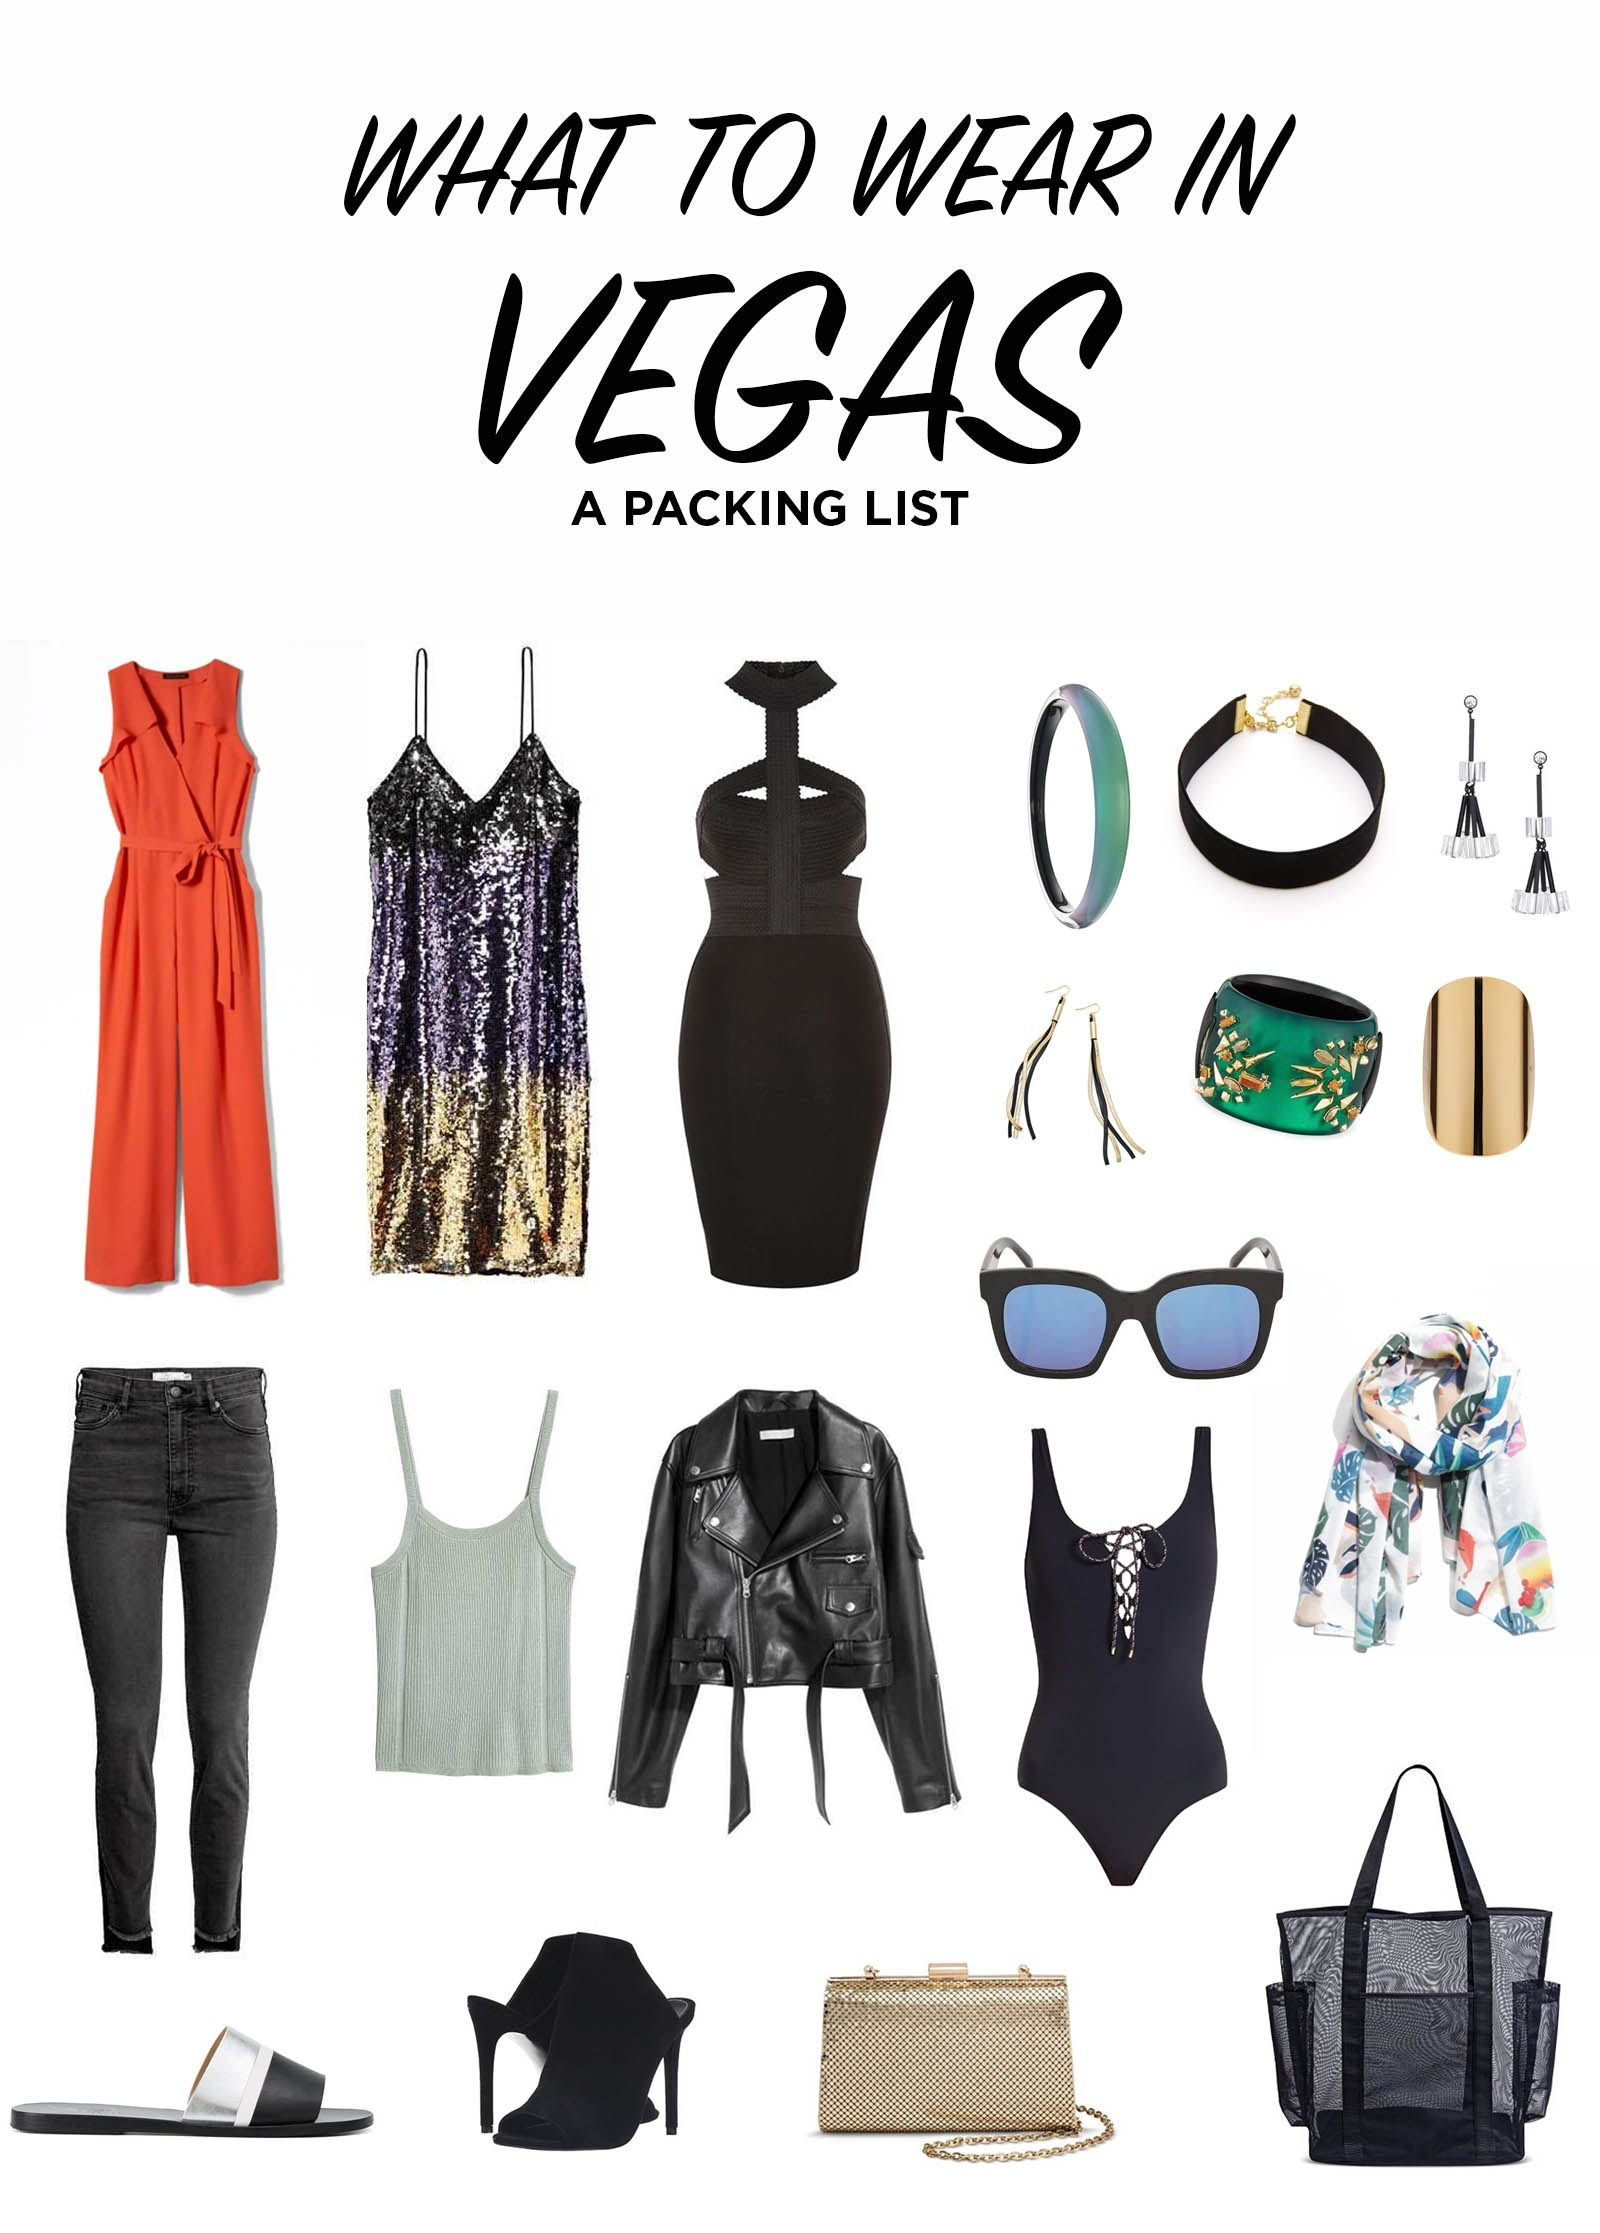 vegas packing list what to wear in vegas outfit ideas  Vegas